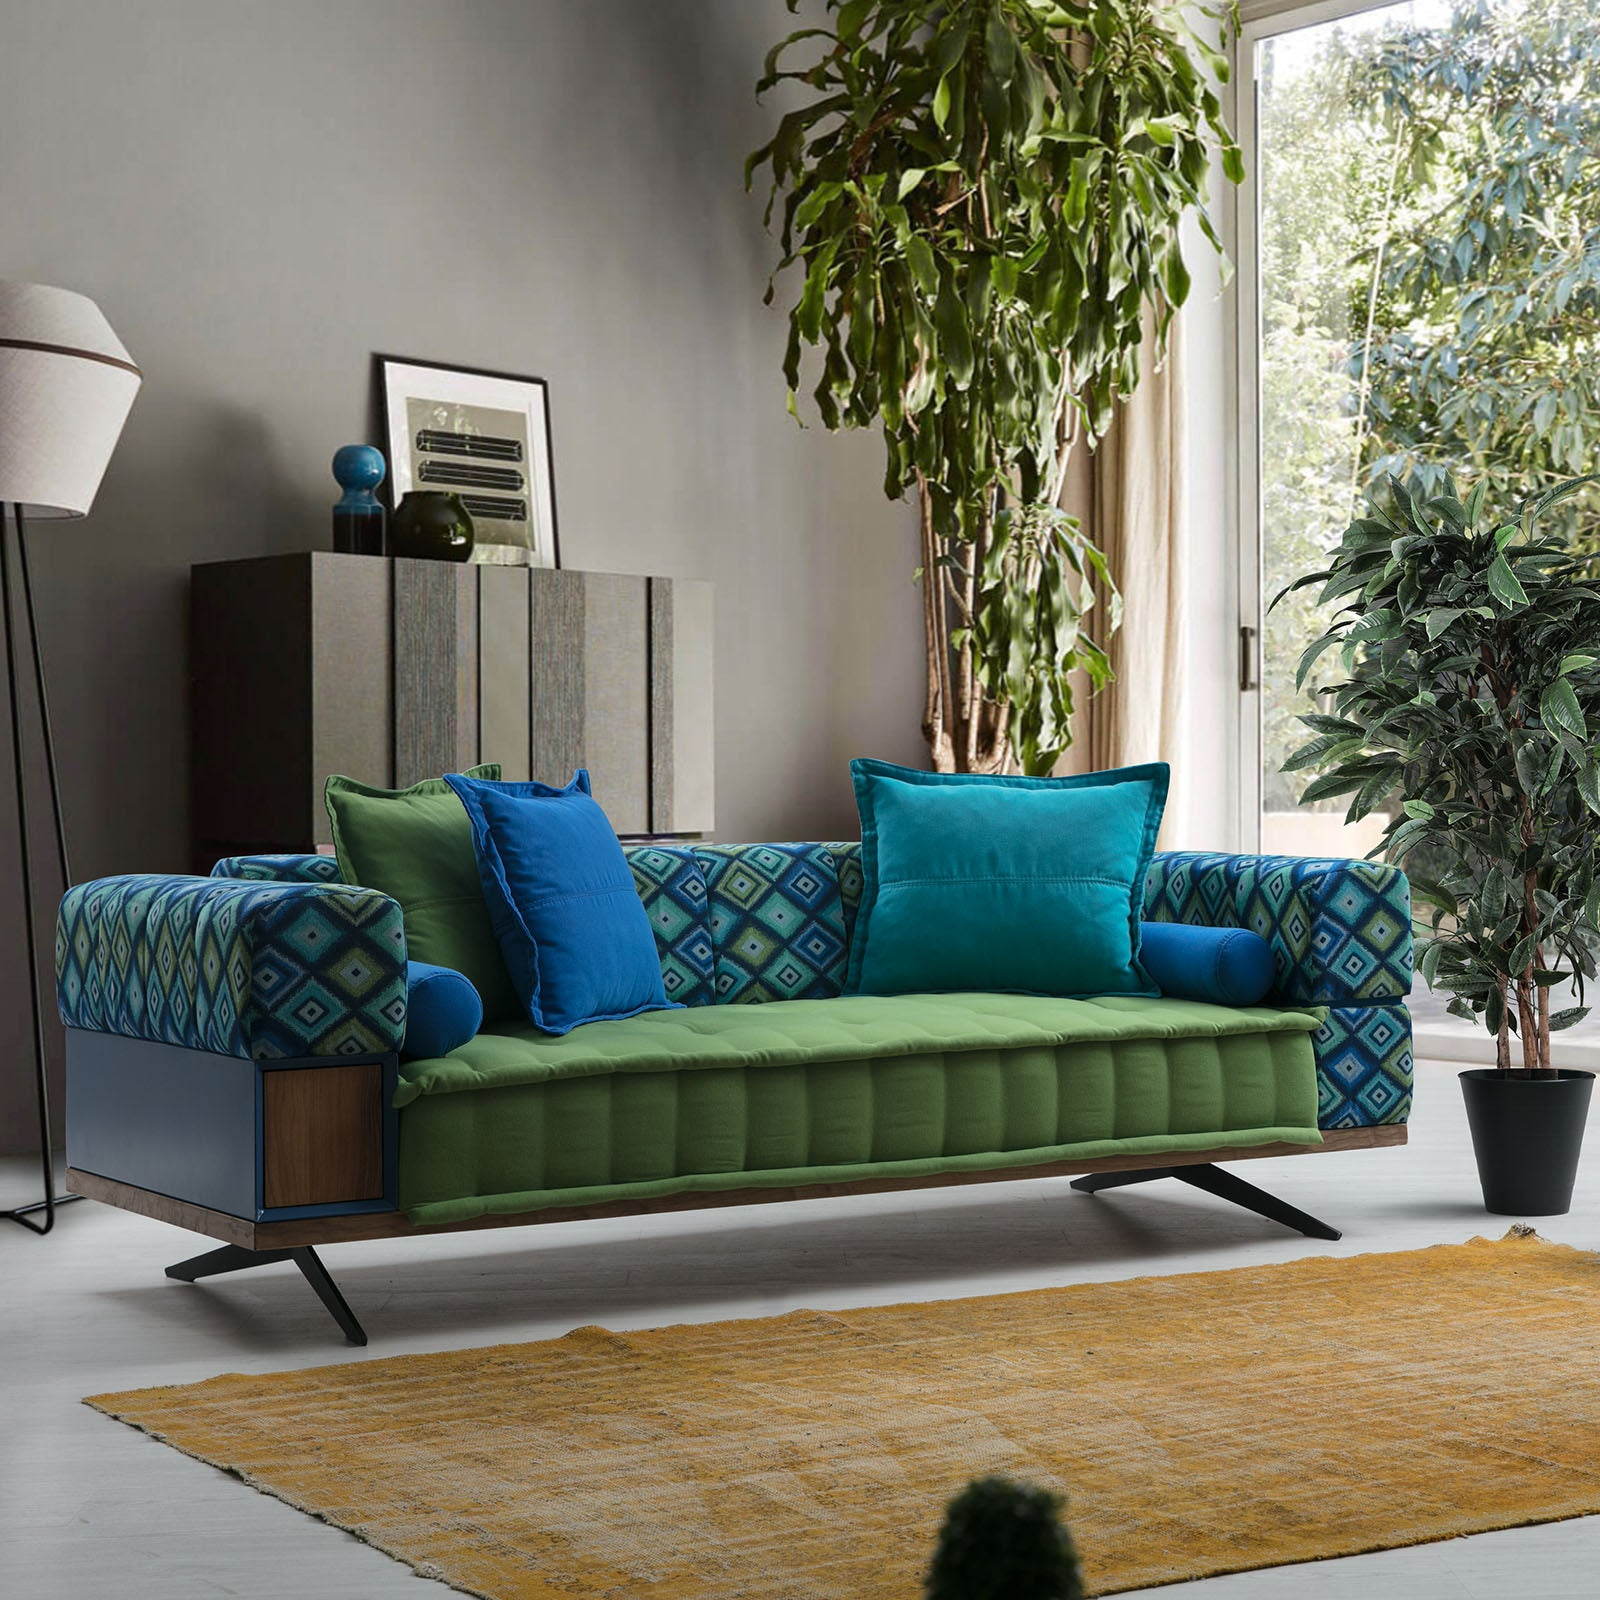 Colorium 3 Seater Sofabed IBIZA001S-Green